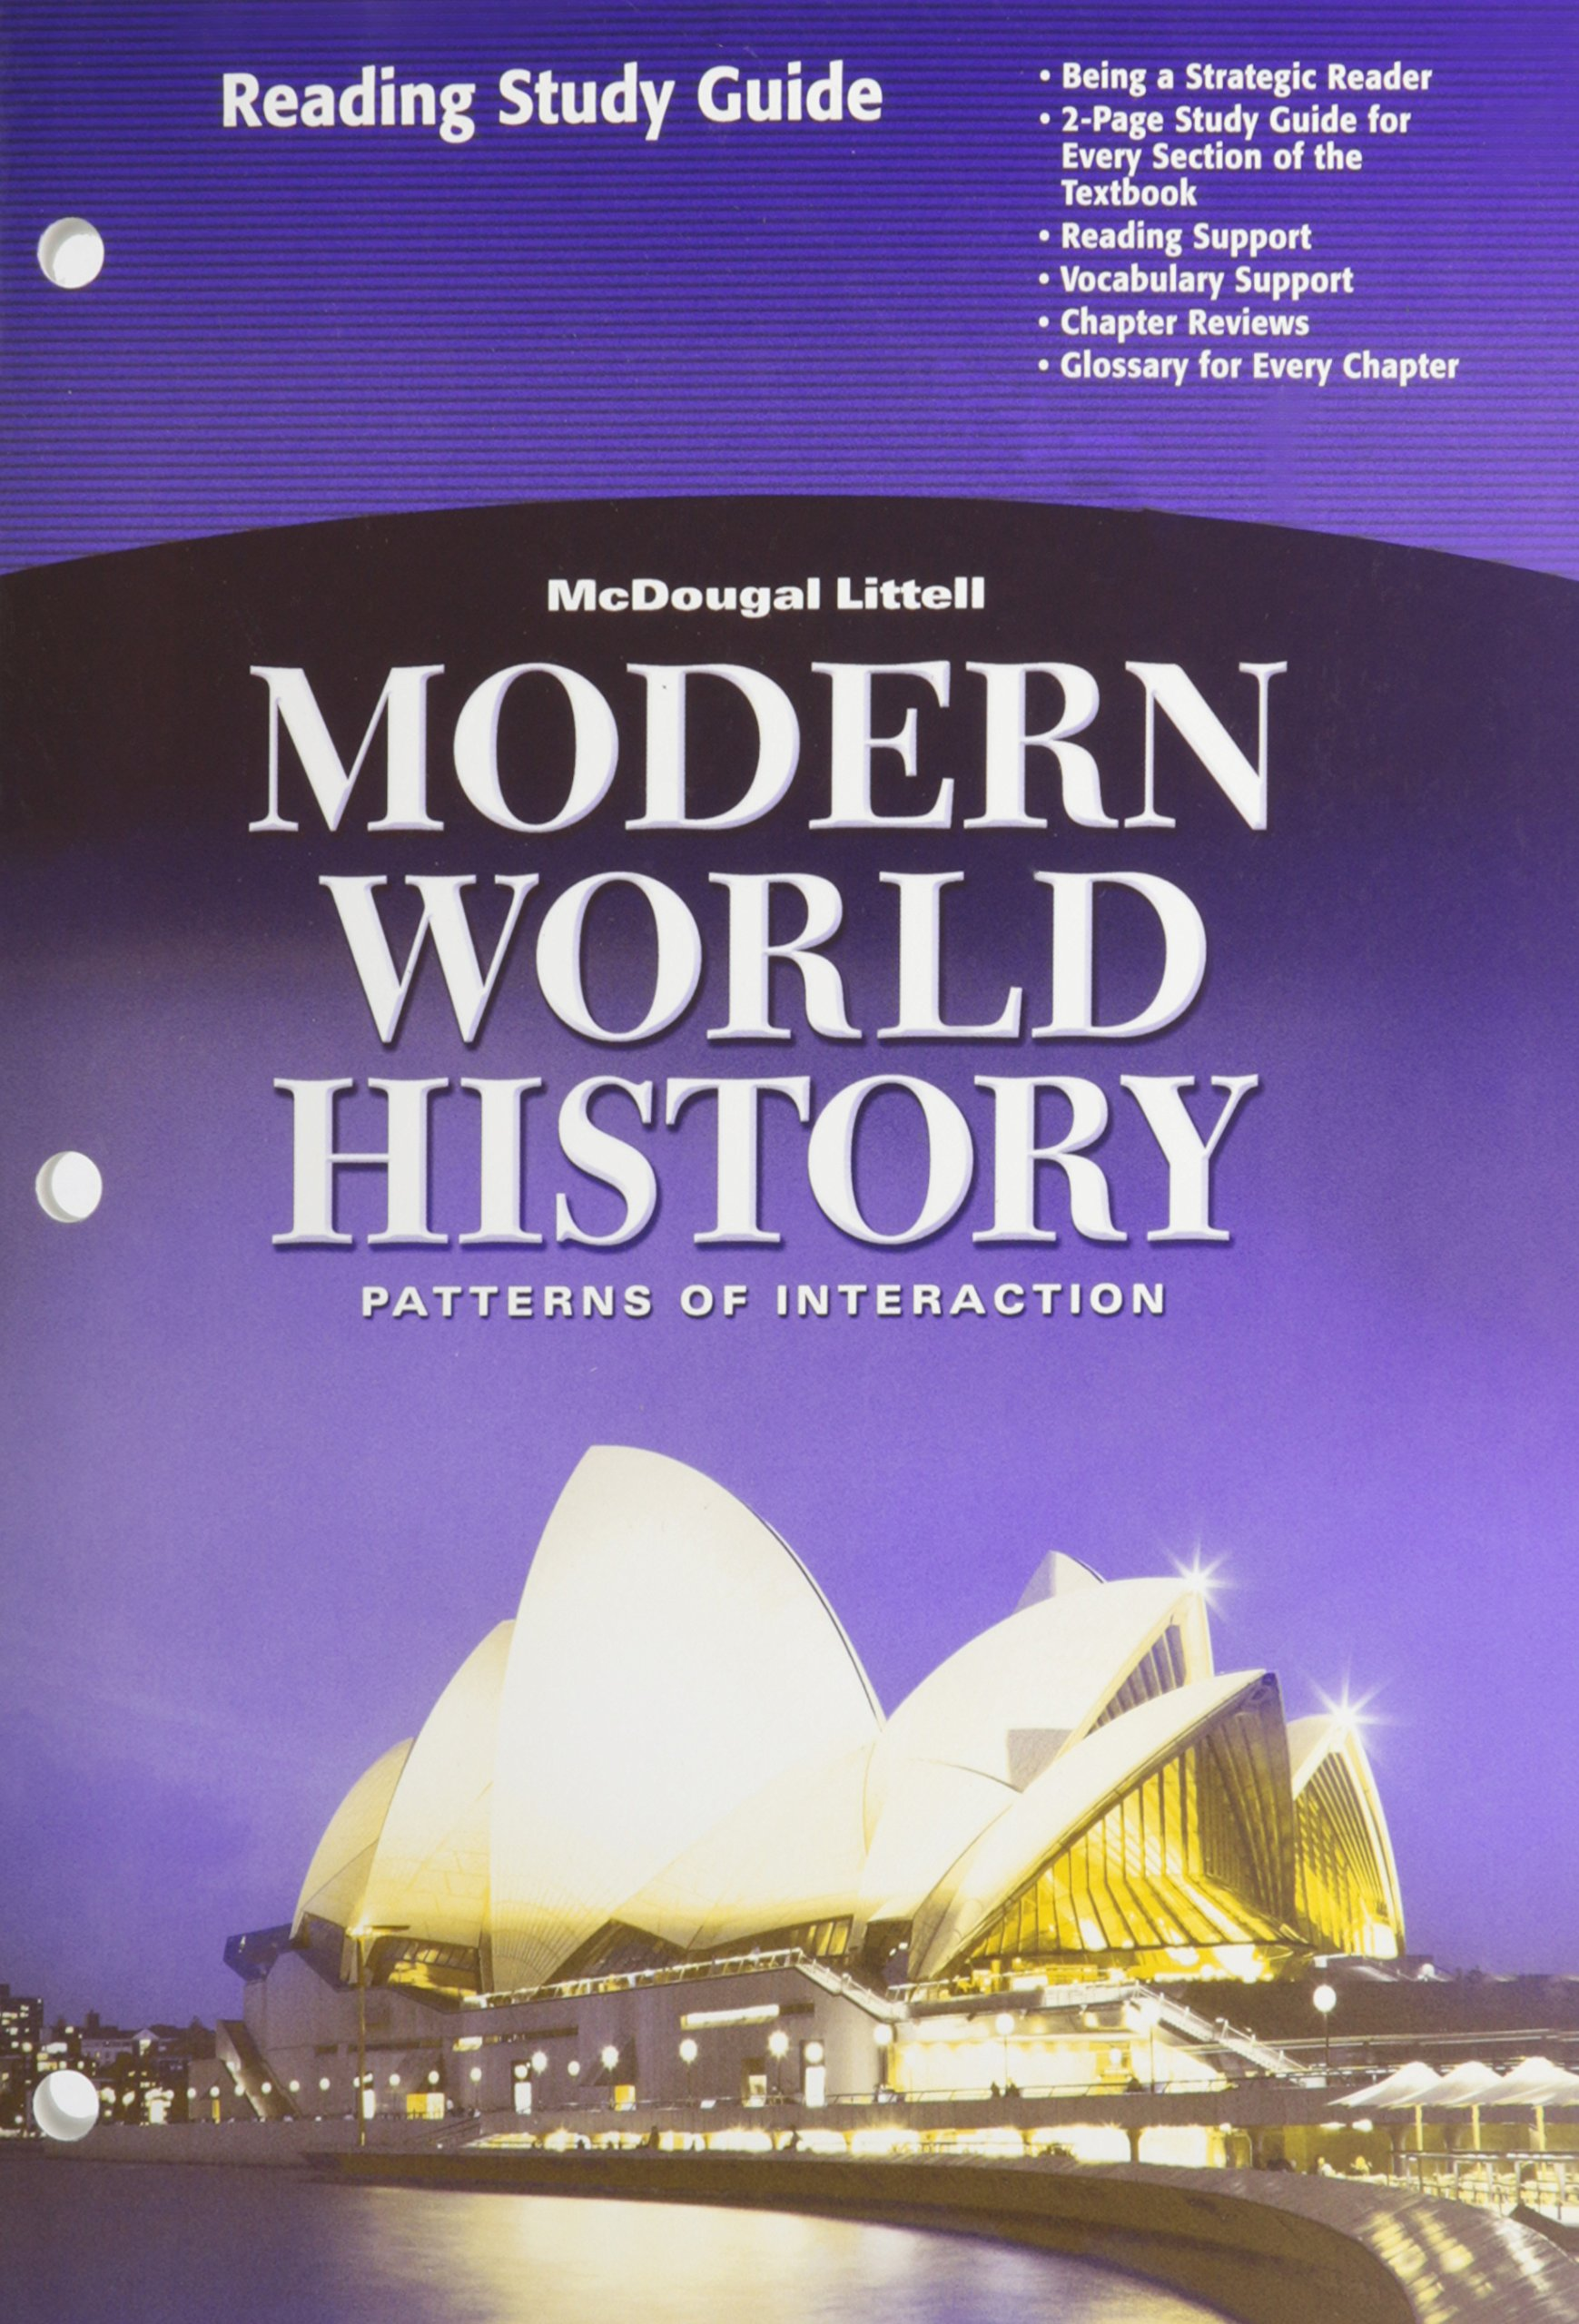 Holt Mcdougal World History Textbook Pdf